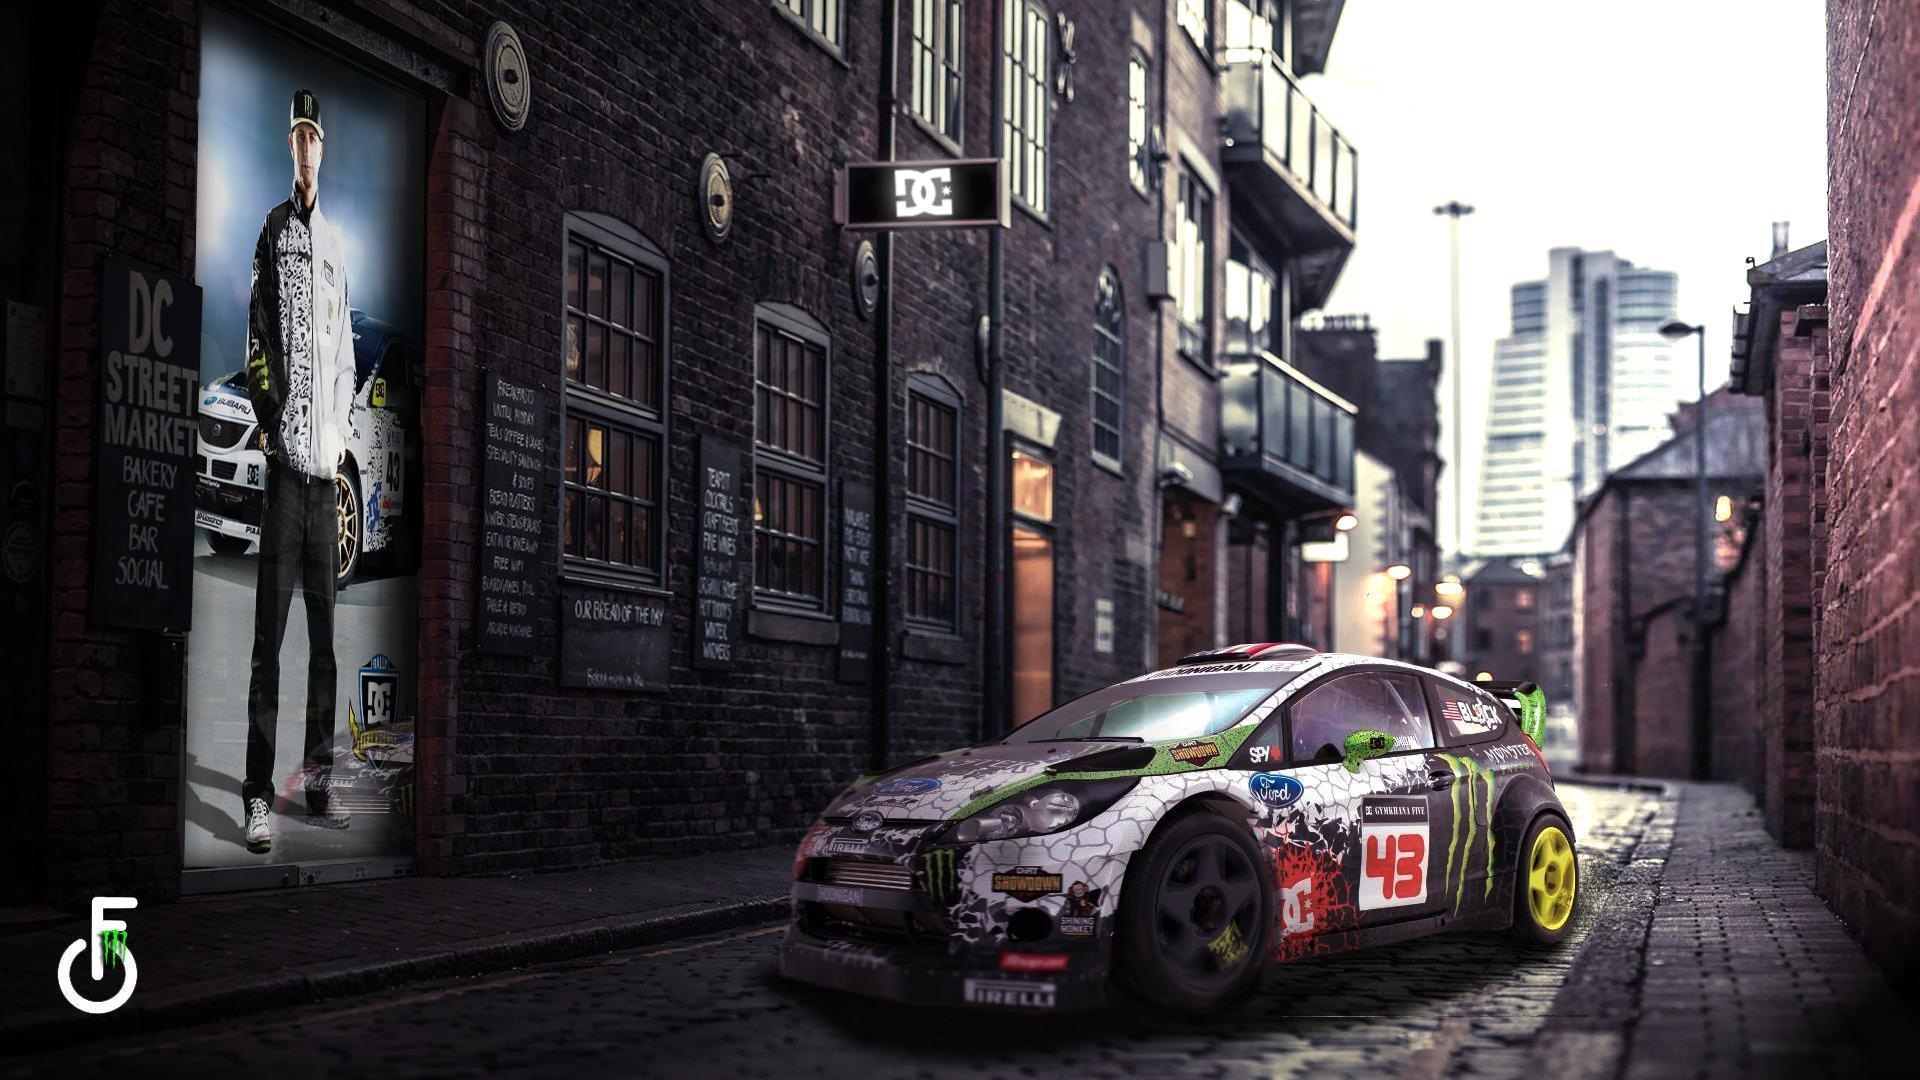 Ken Block Wallpapers Wallpaper Cave